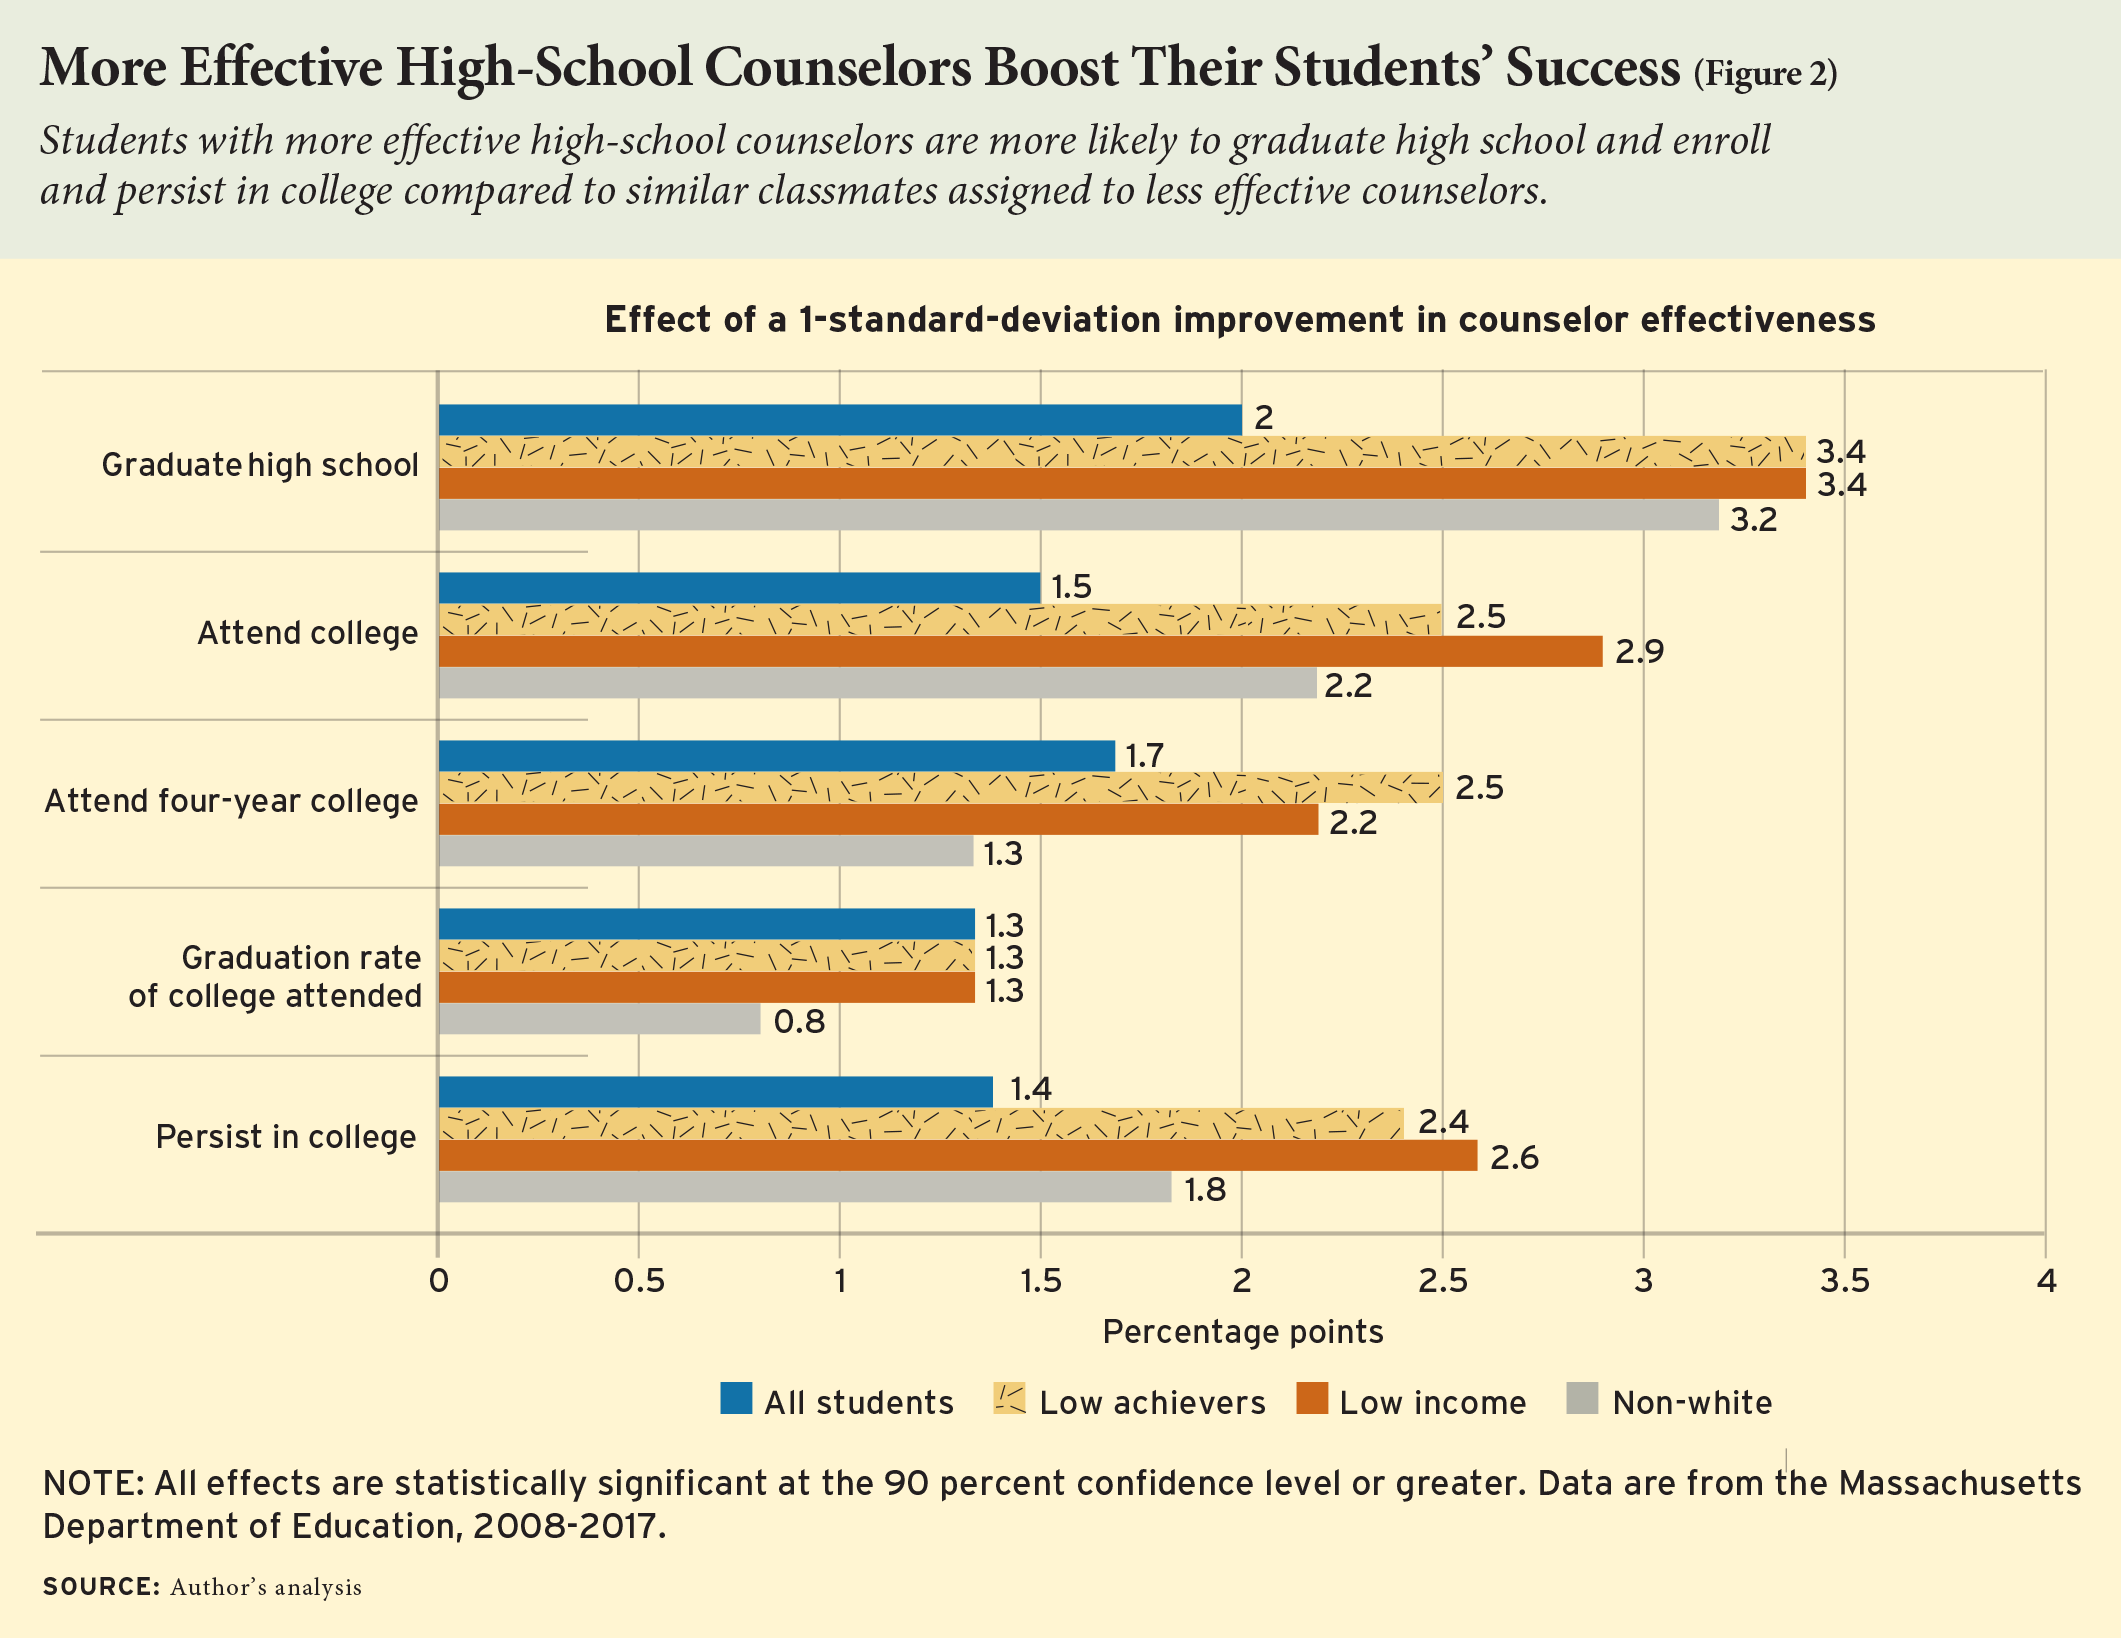 More Effective High-School Counselors Boost Their Students' Success (Figure 2)